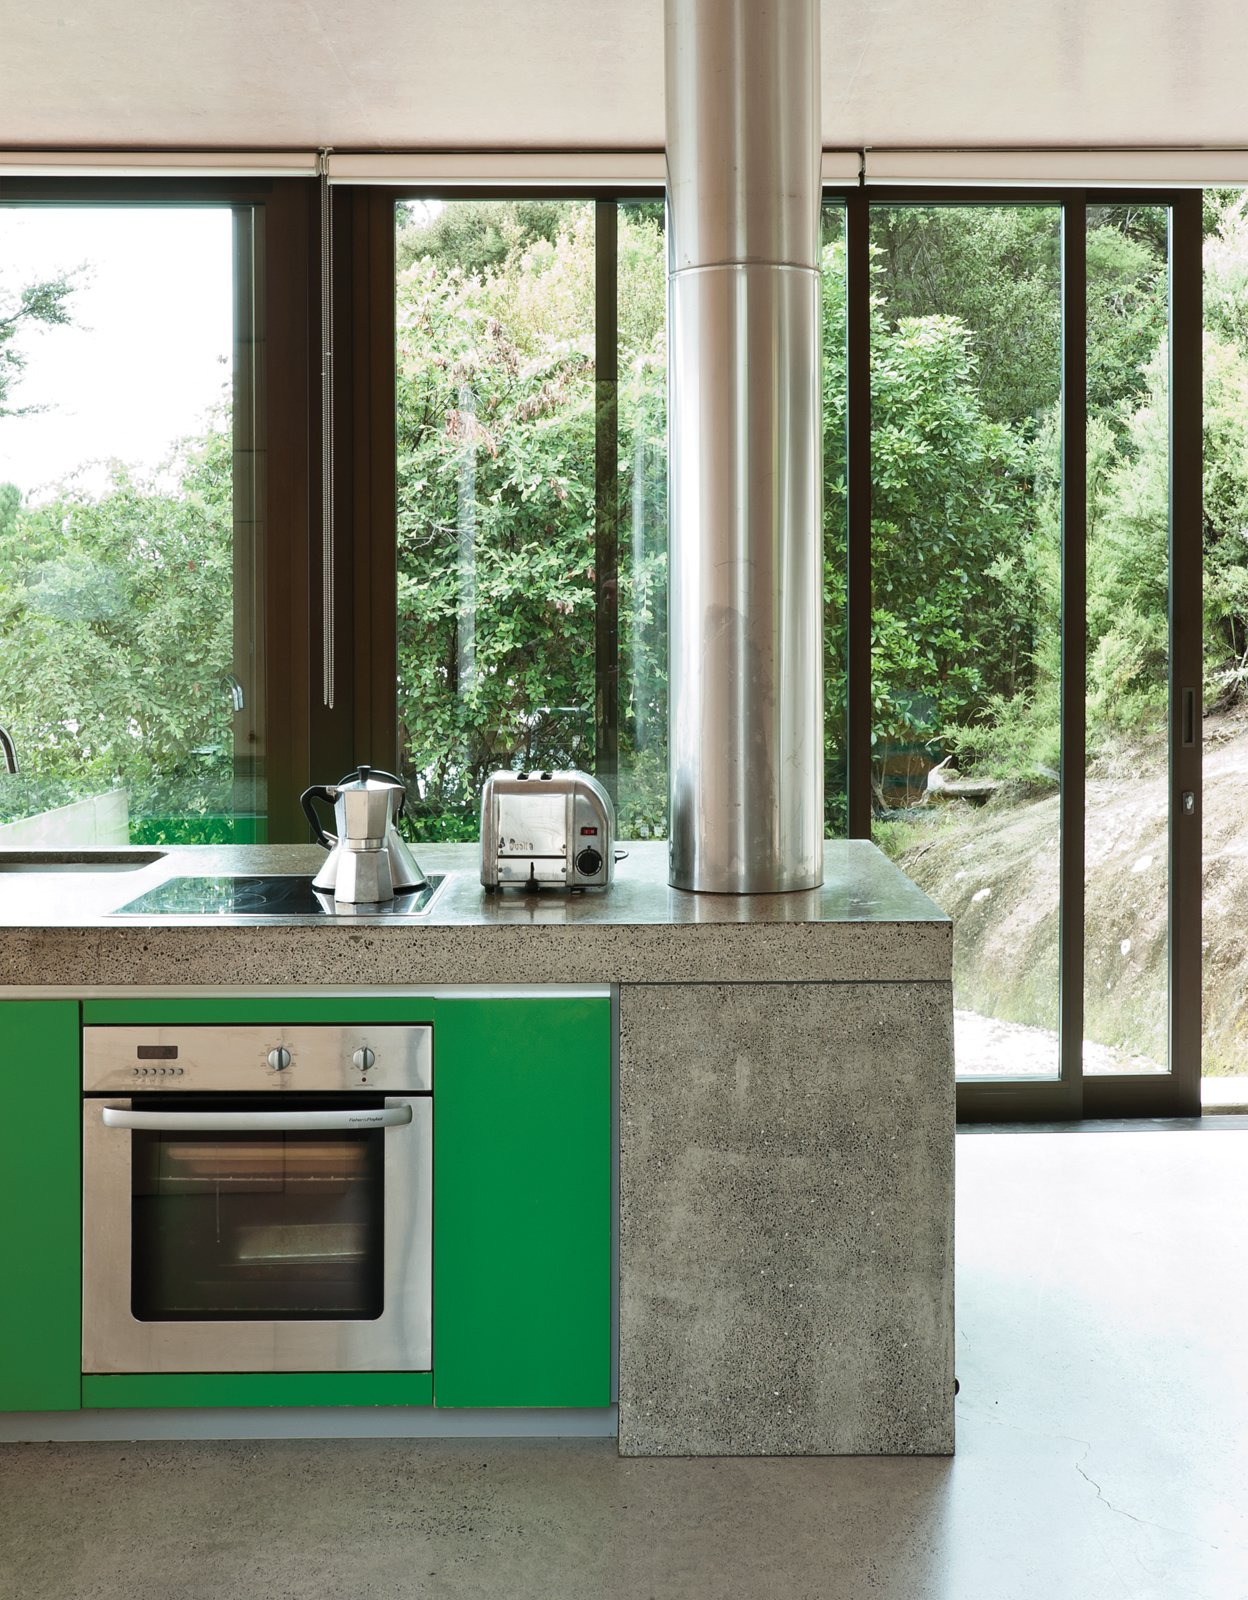 A pop of color in the kitchen cabinets refers to the native greenery outside. Tagged: Kitchen, Concrete Counter, Cooktops, and Wall Oven. Make Your Parents Happy by Building Them a House - Photo 3 of 25